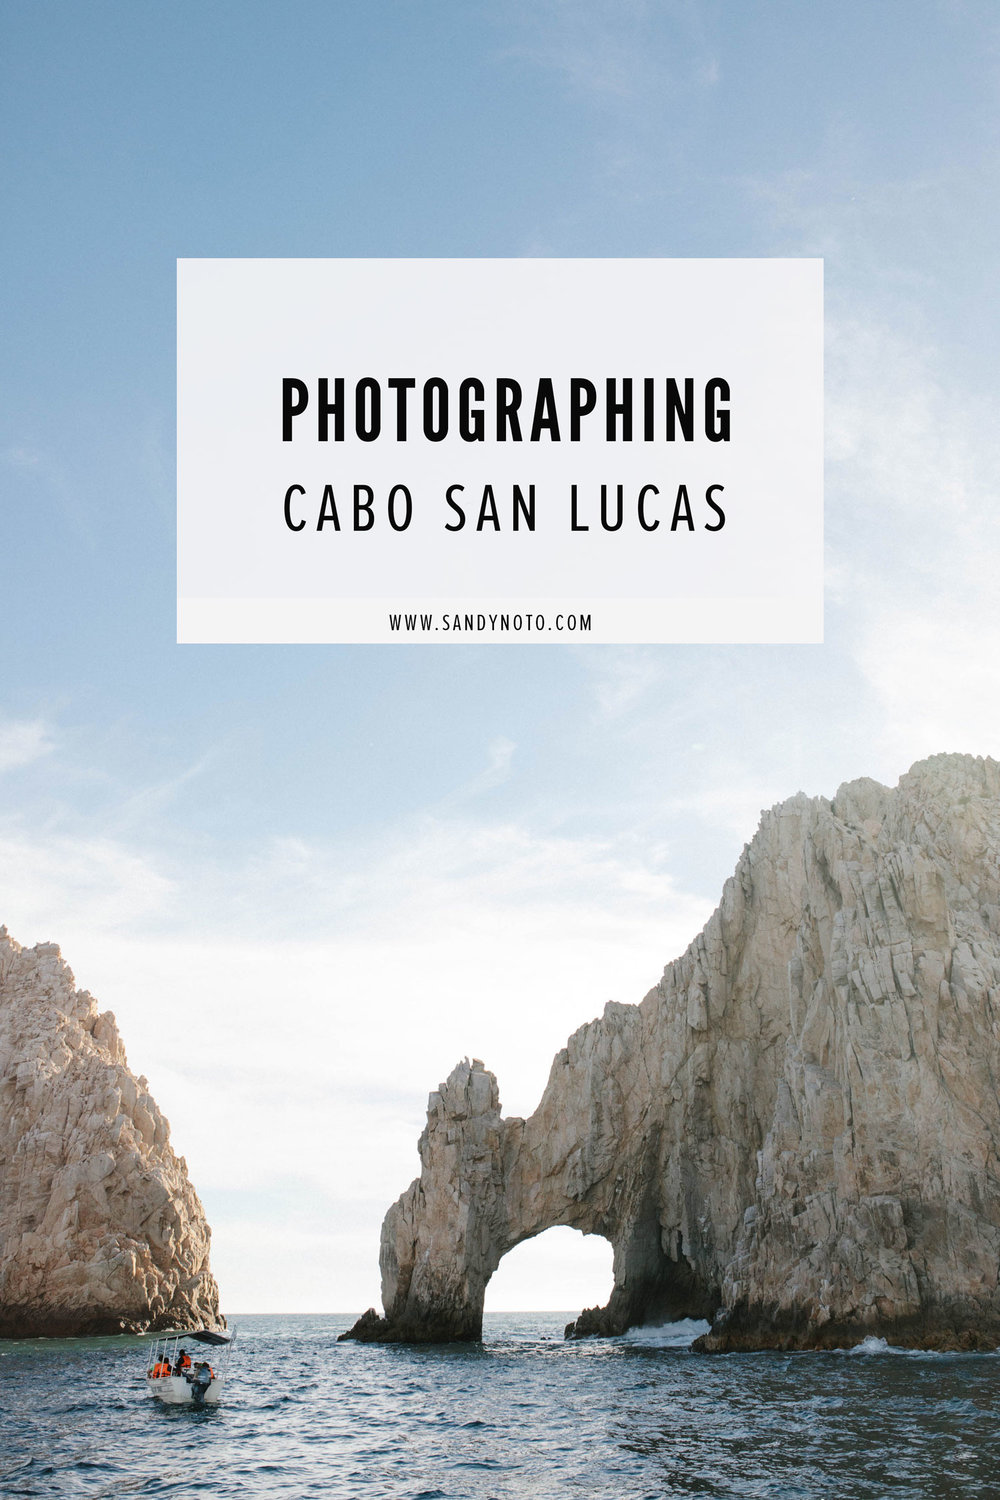 Travel Photography from Cabo San Lucas, Mexico